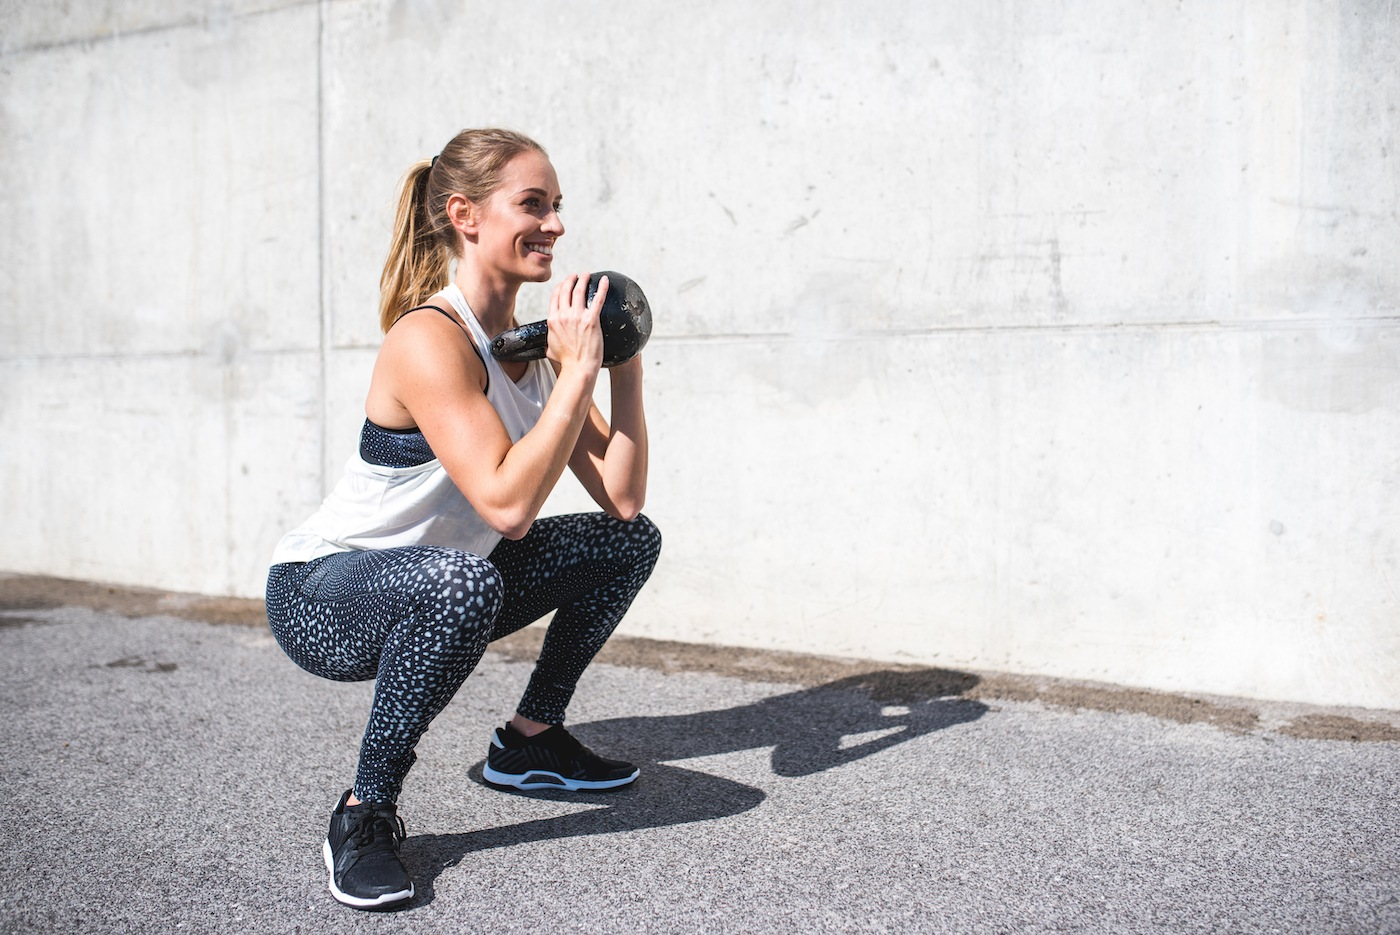 Thumbnail for Weight distribution is the key to workout longevity—here's how to test yours right now